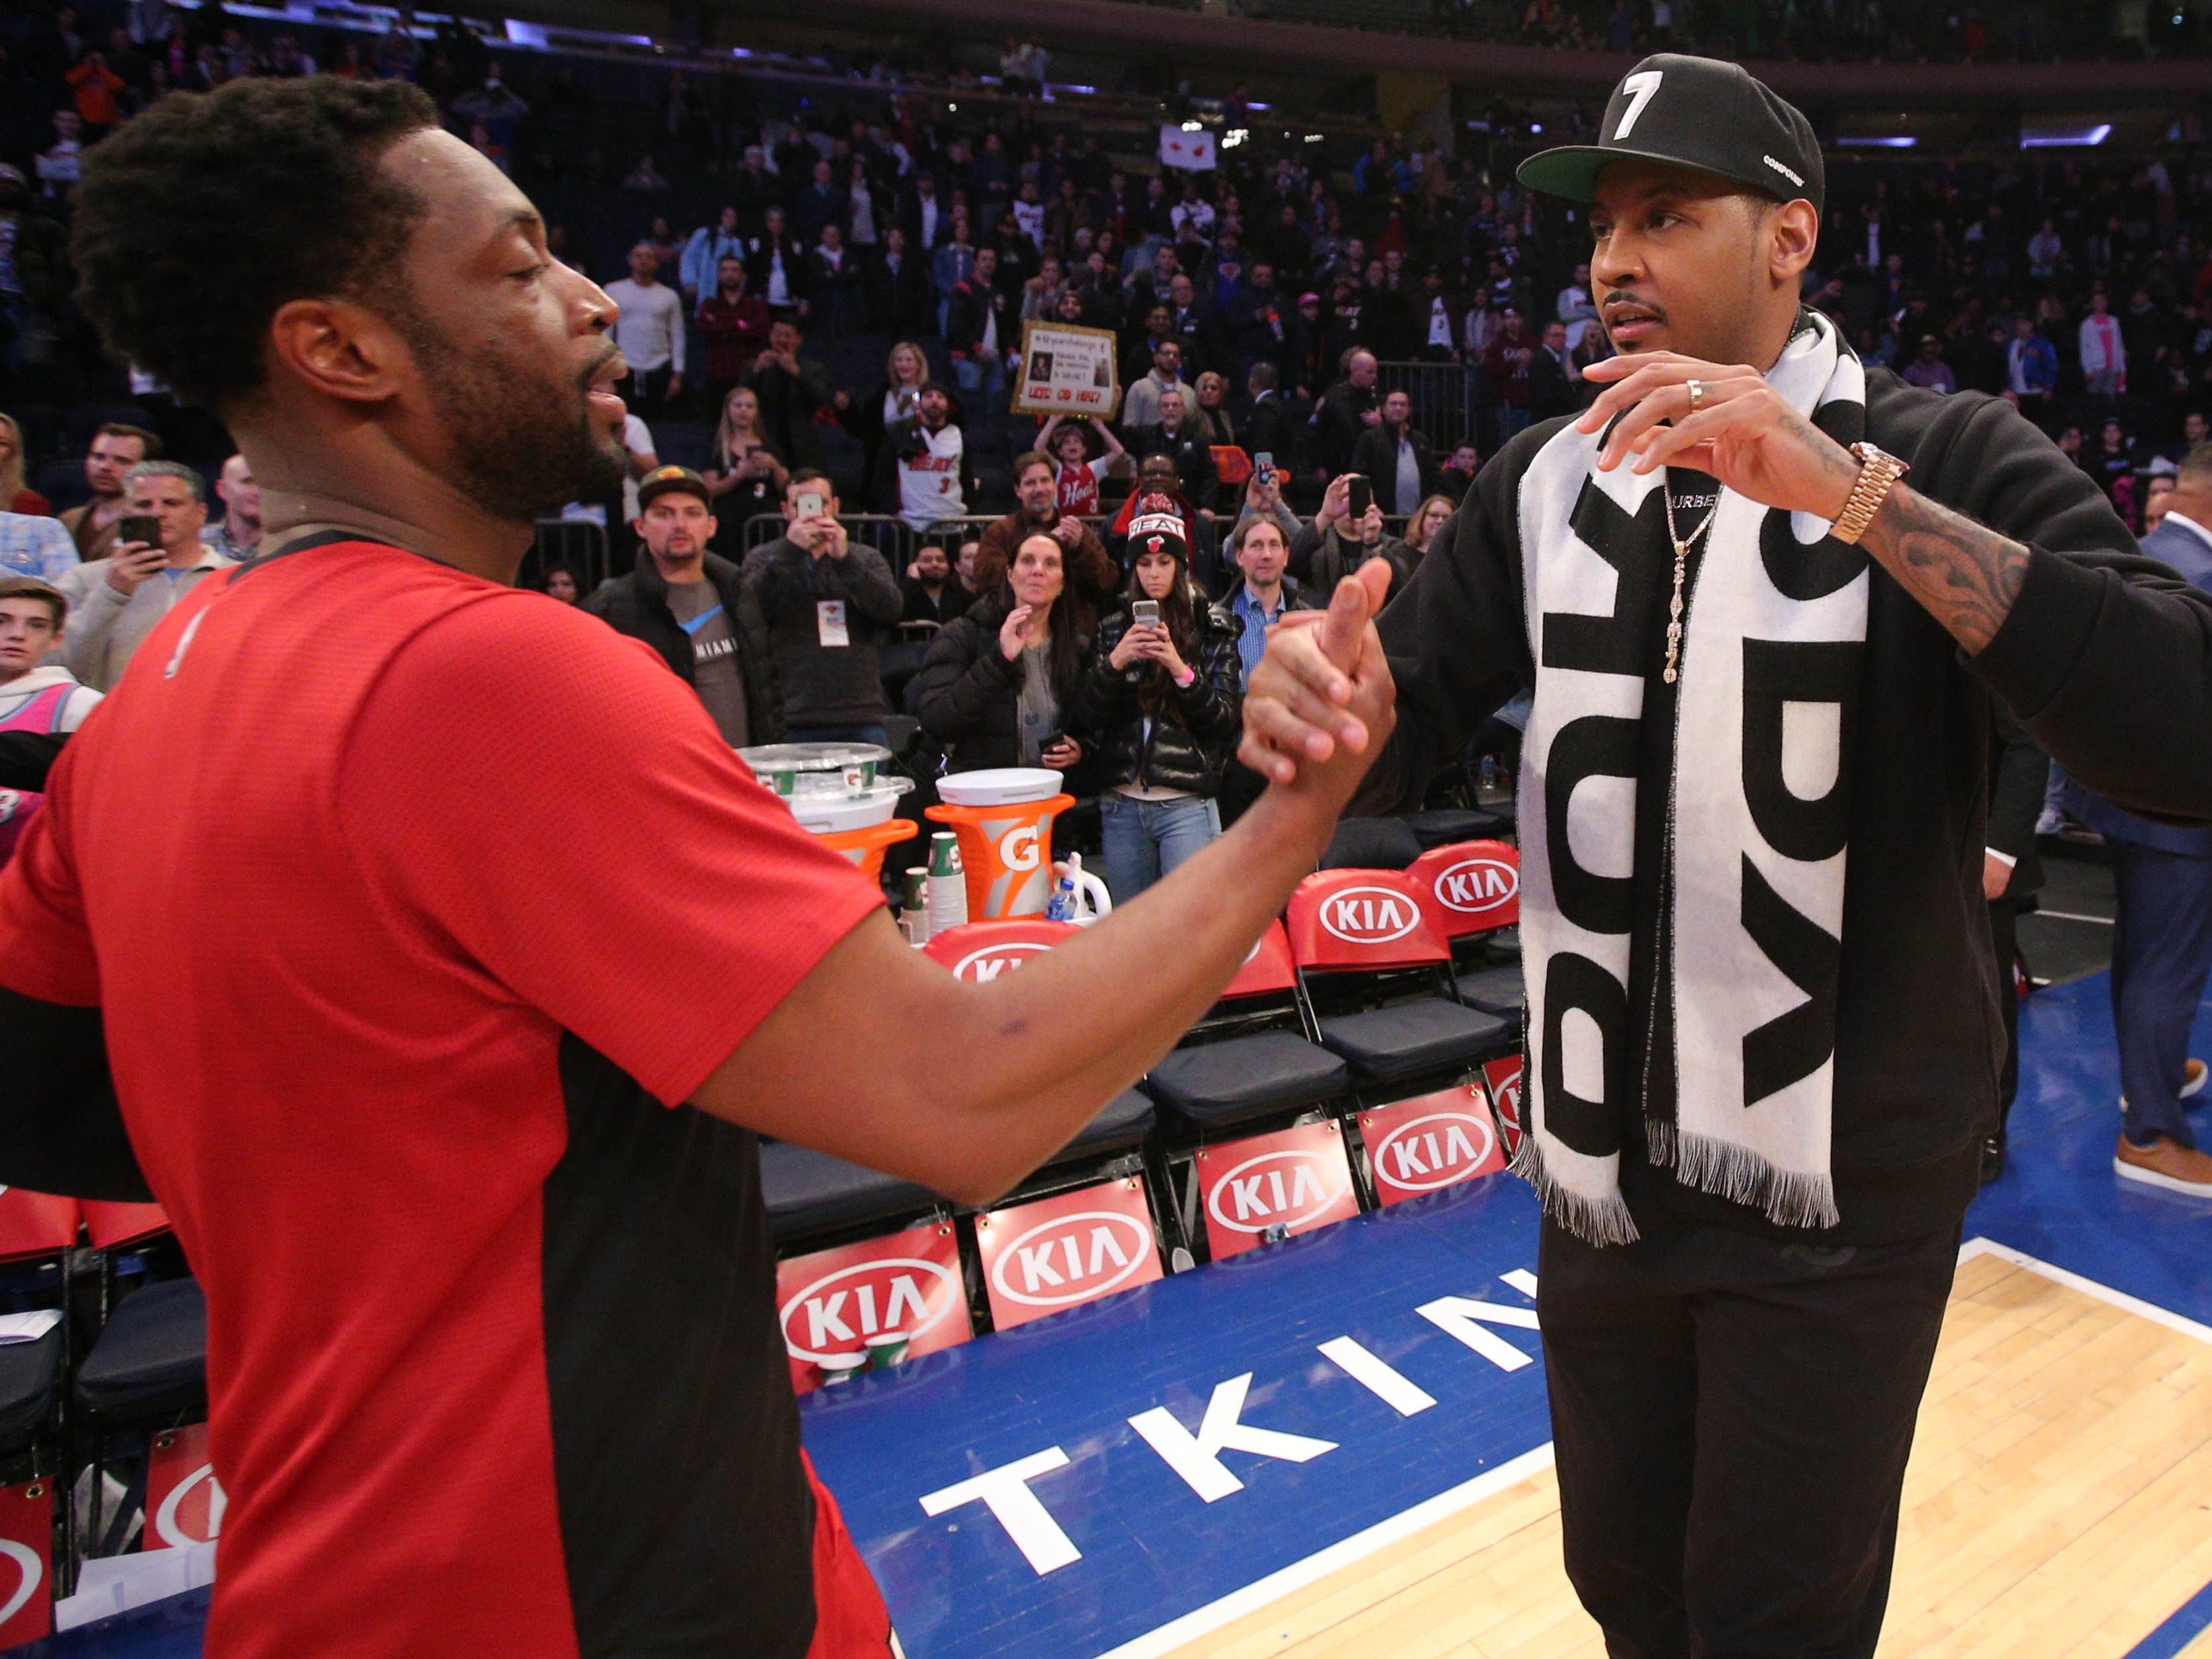 Jan. 27: Heat guard Dwayne Wade shares a moment with his good pal Carmelo Anthony after playing the Knicks in New York. Anthony took in the game as a spectator as Wade made one of his final appearances at Madison Square Garden.